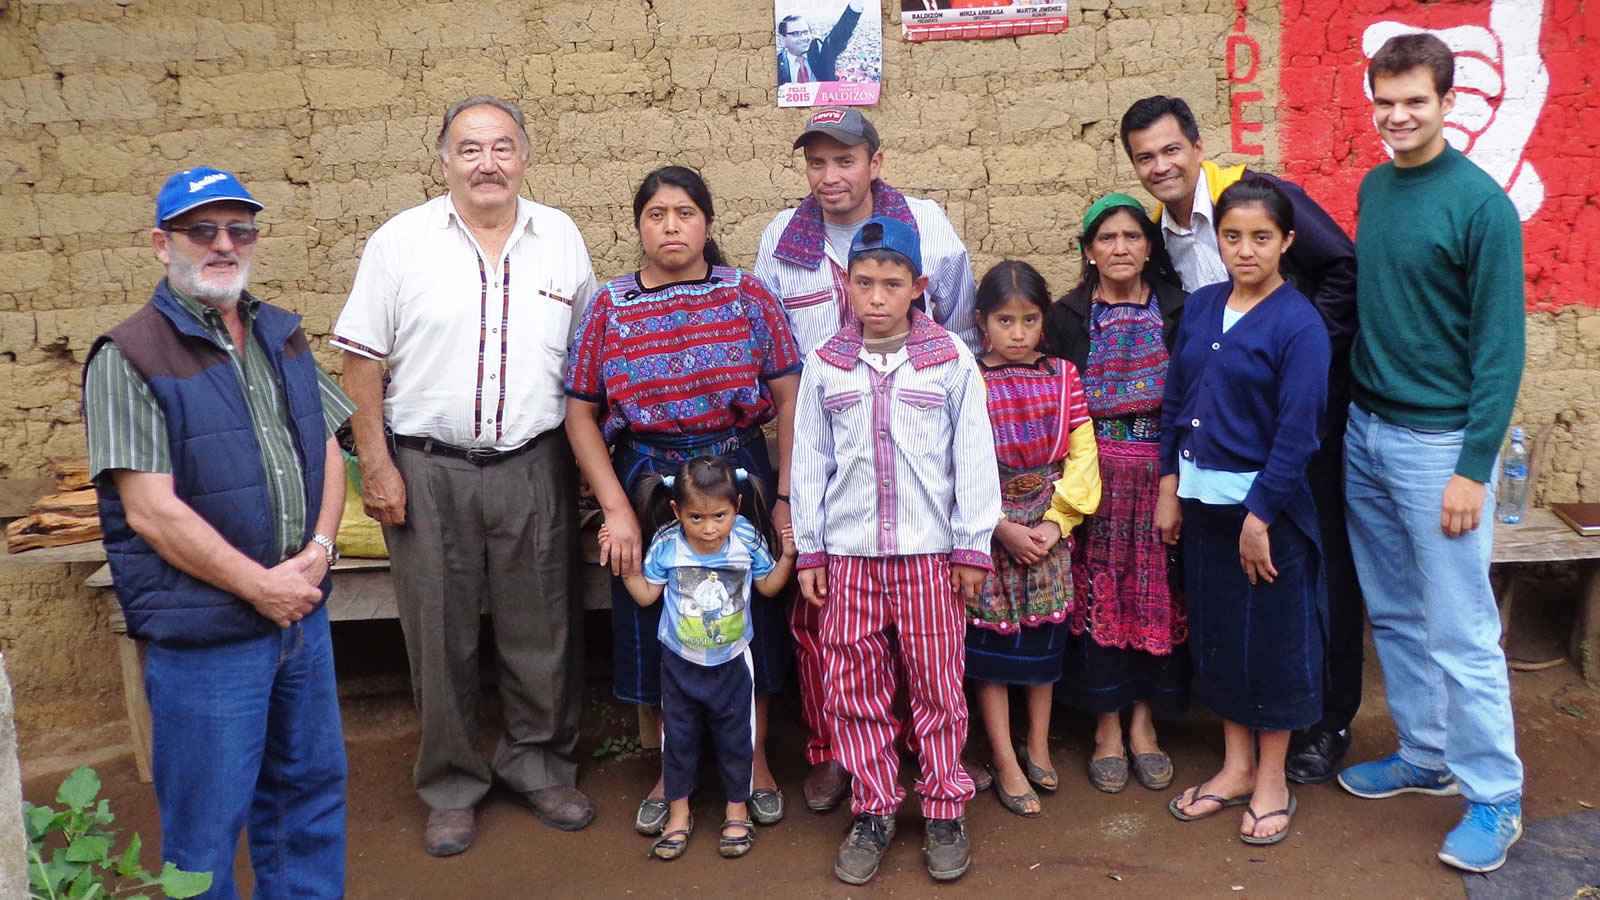 Nicolas Lake with Family in Guatemala